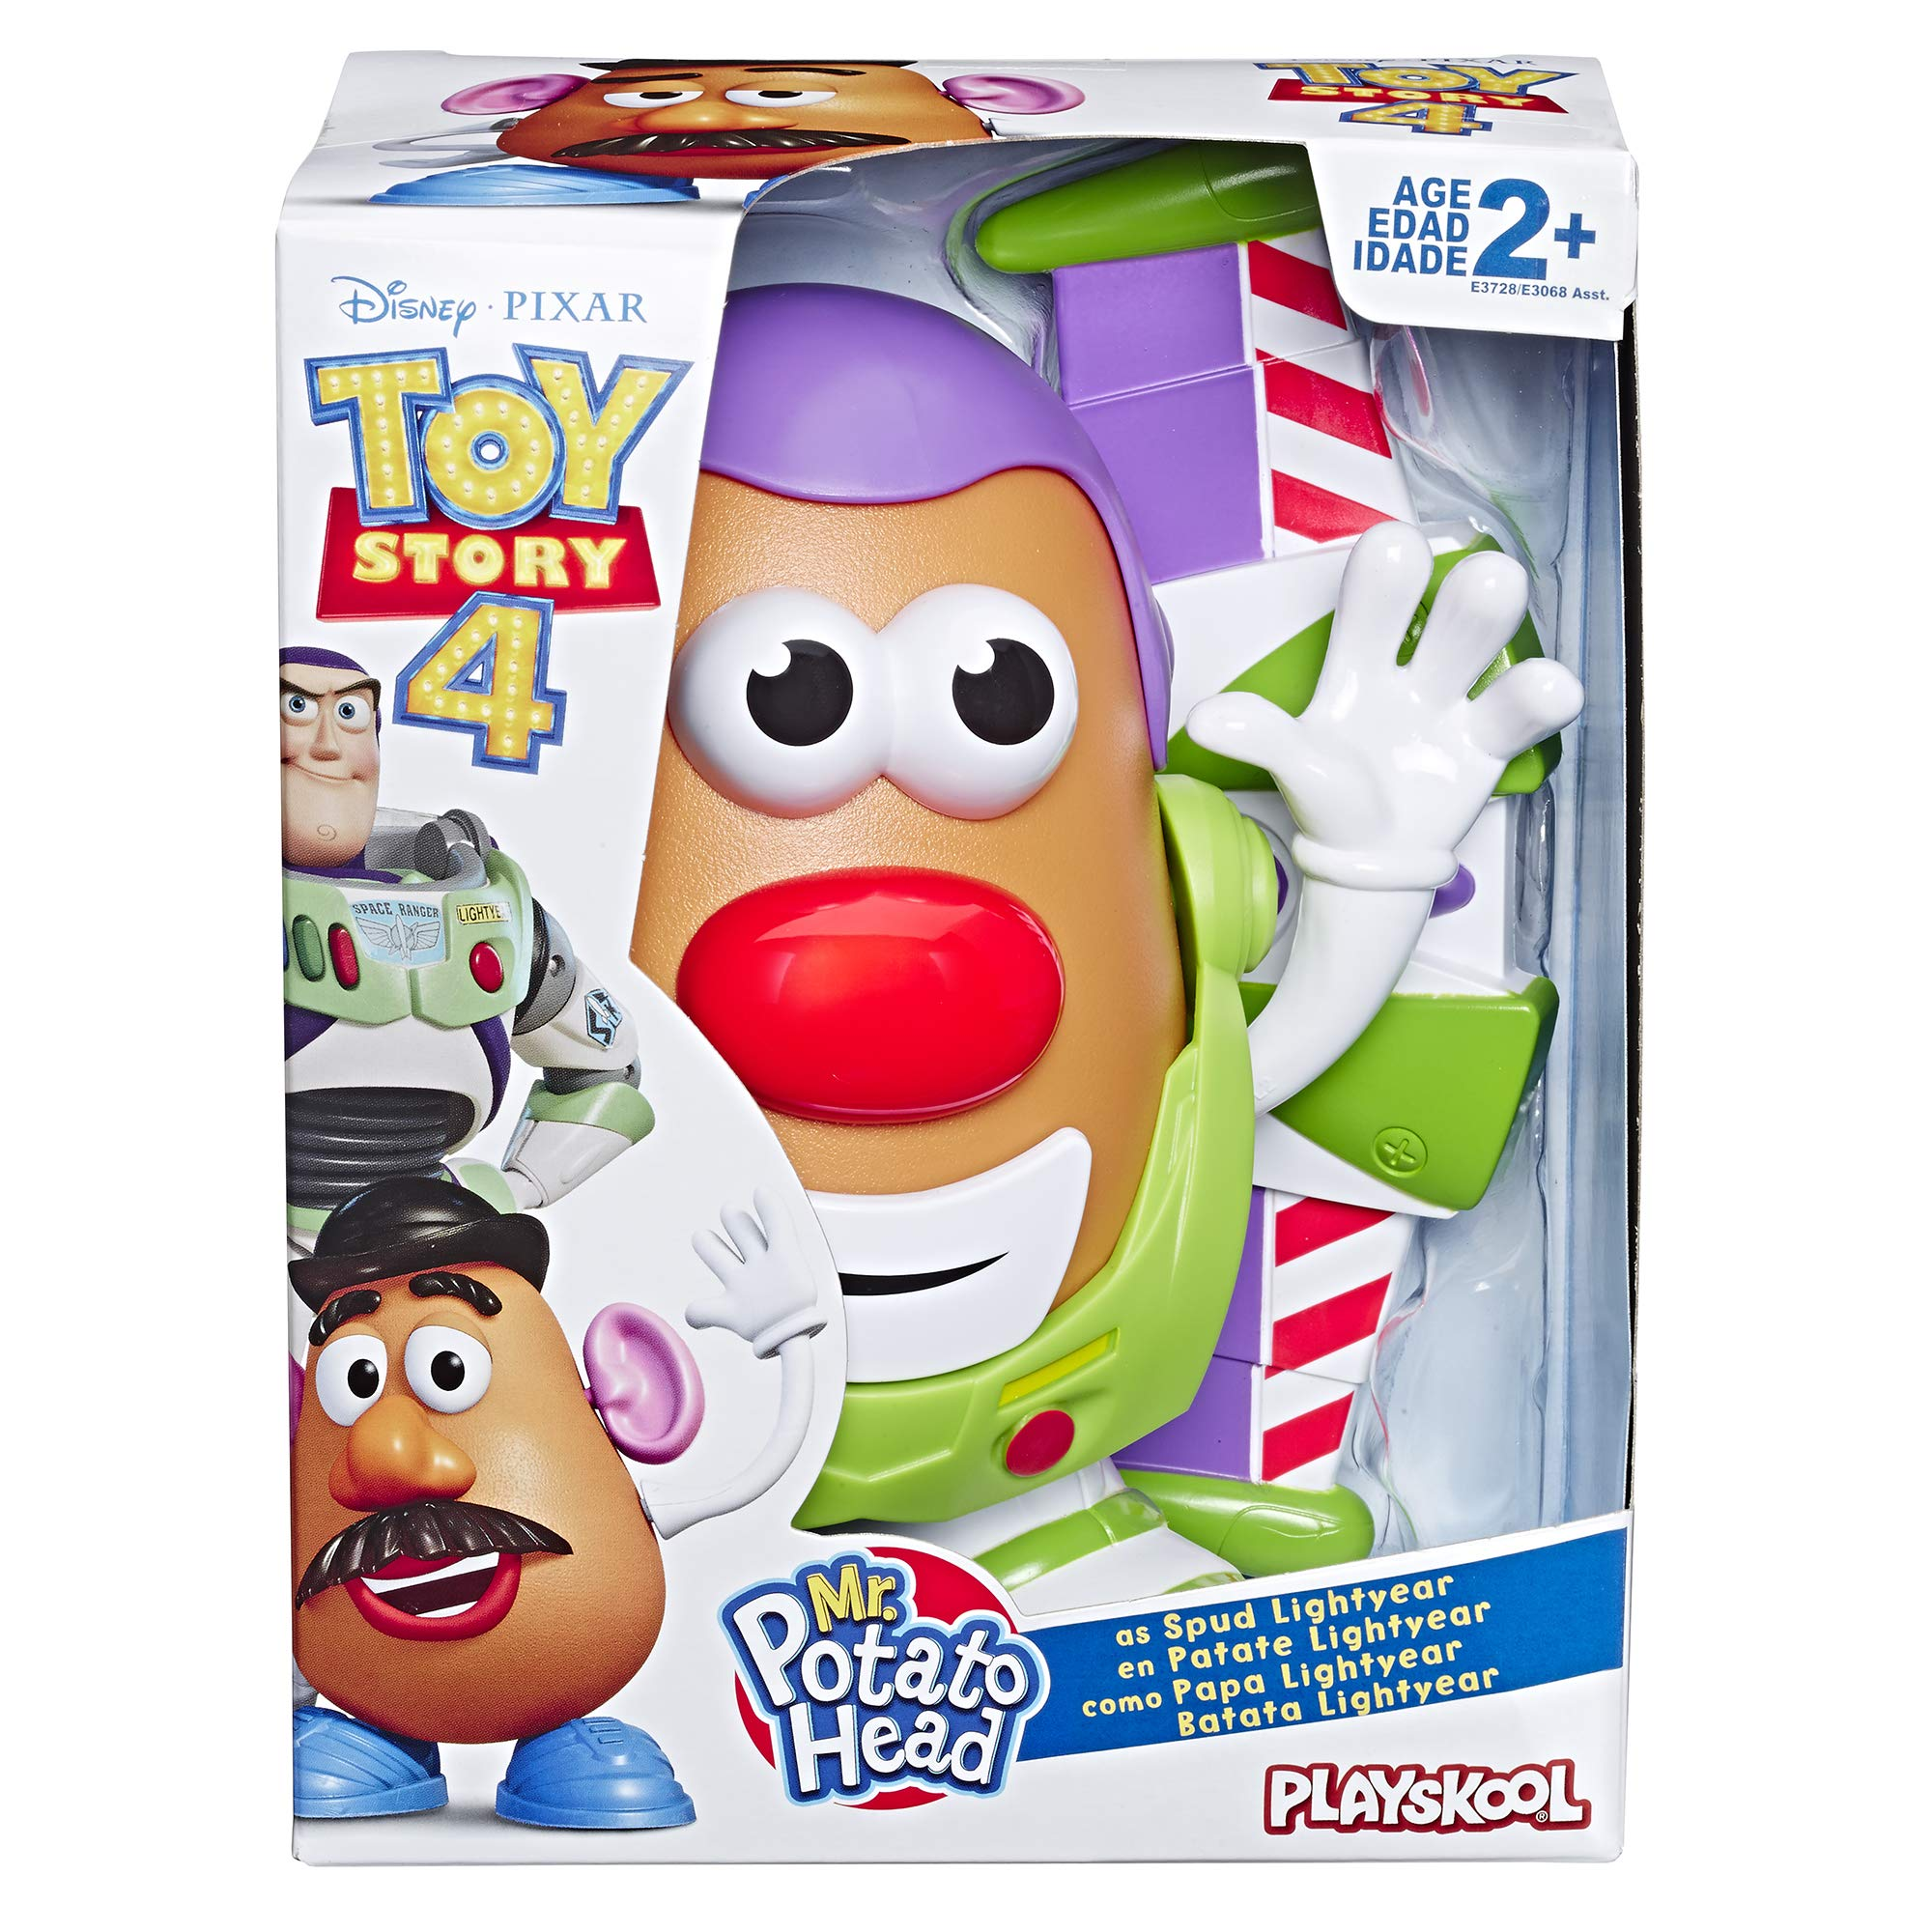 Mr Potato Head Disney/Pixar Toy Story 4 Spud Lightyear Figure Toy for Kids Ages 2 & Up - wiihuu